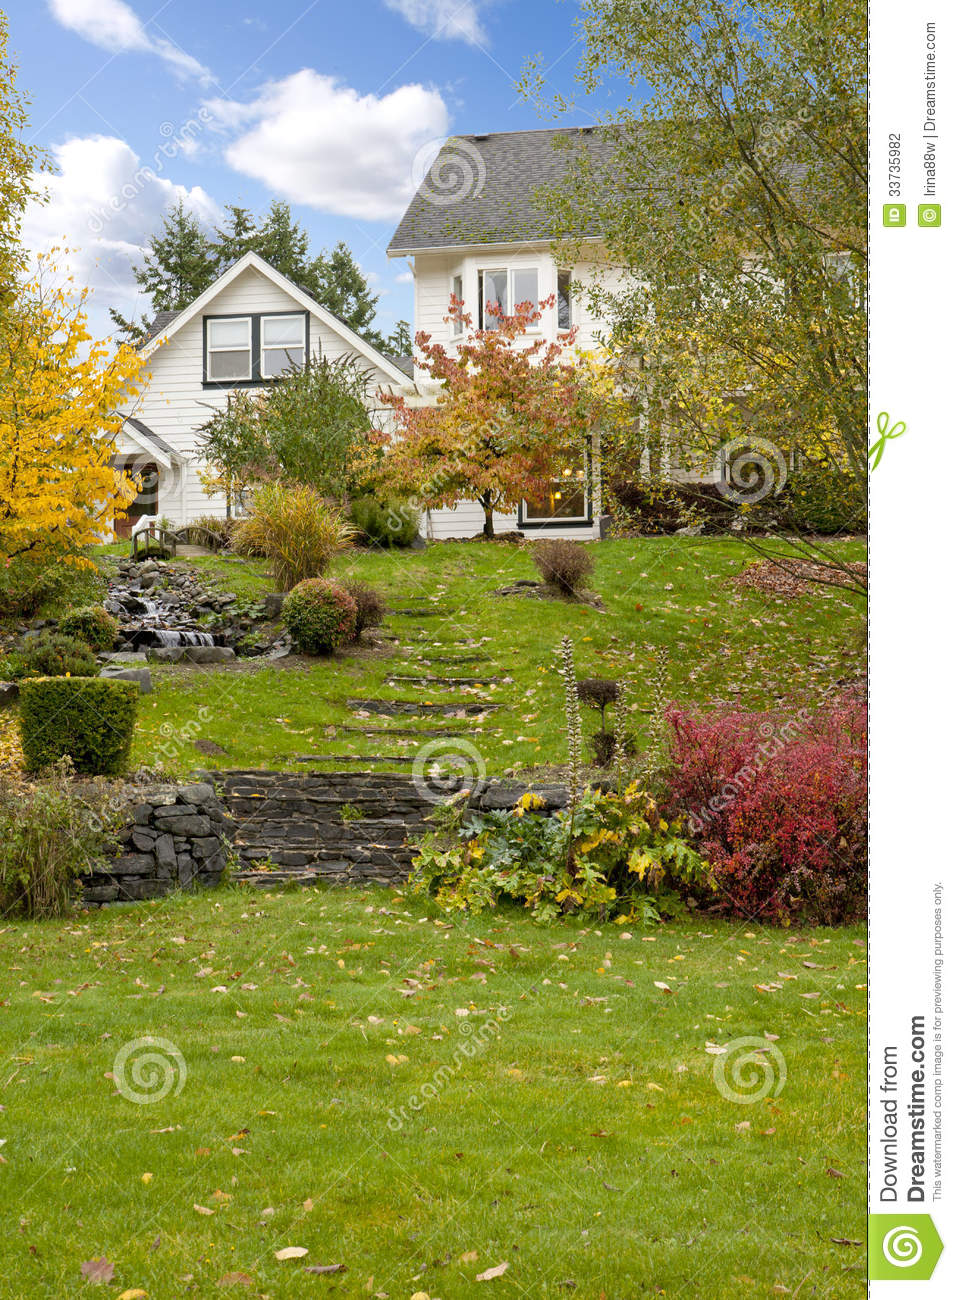 White horse farm American house during fall with green grass.